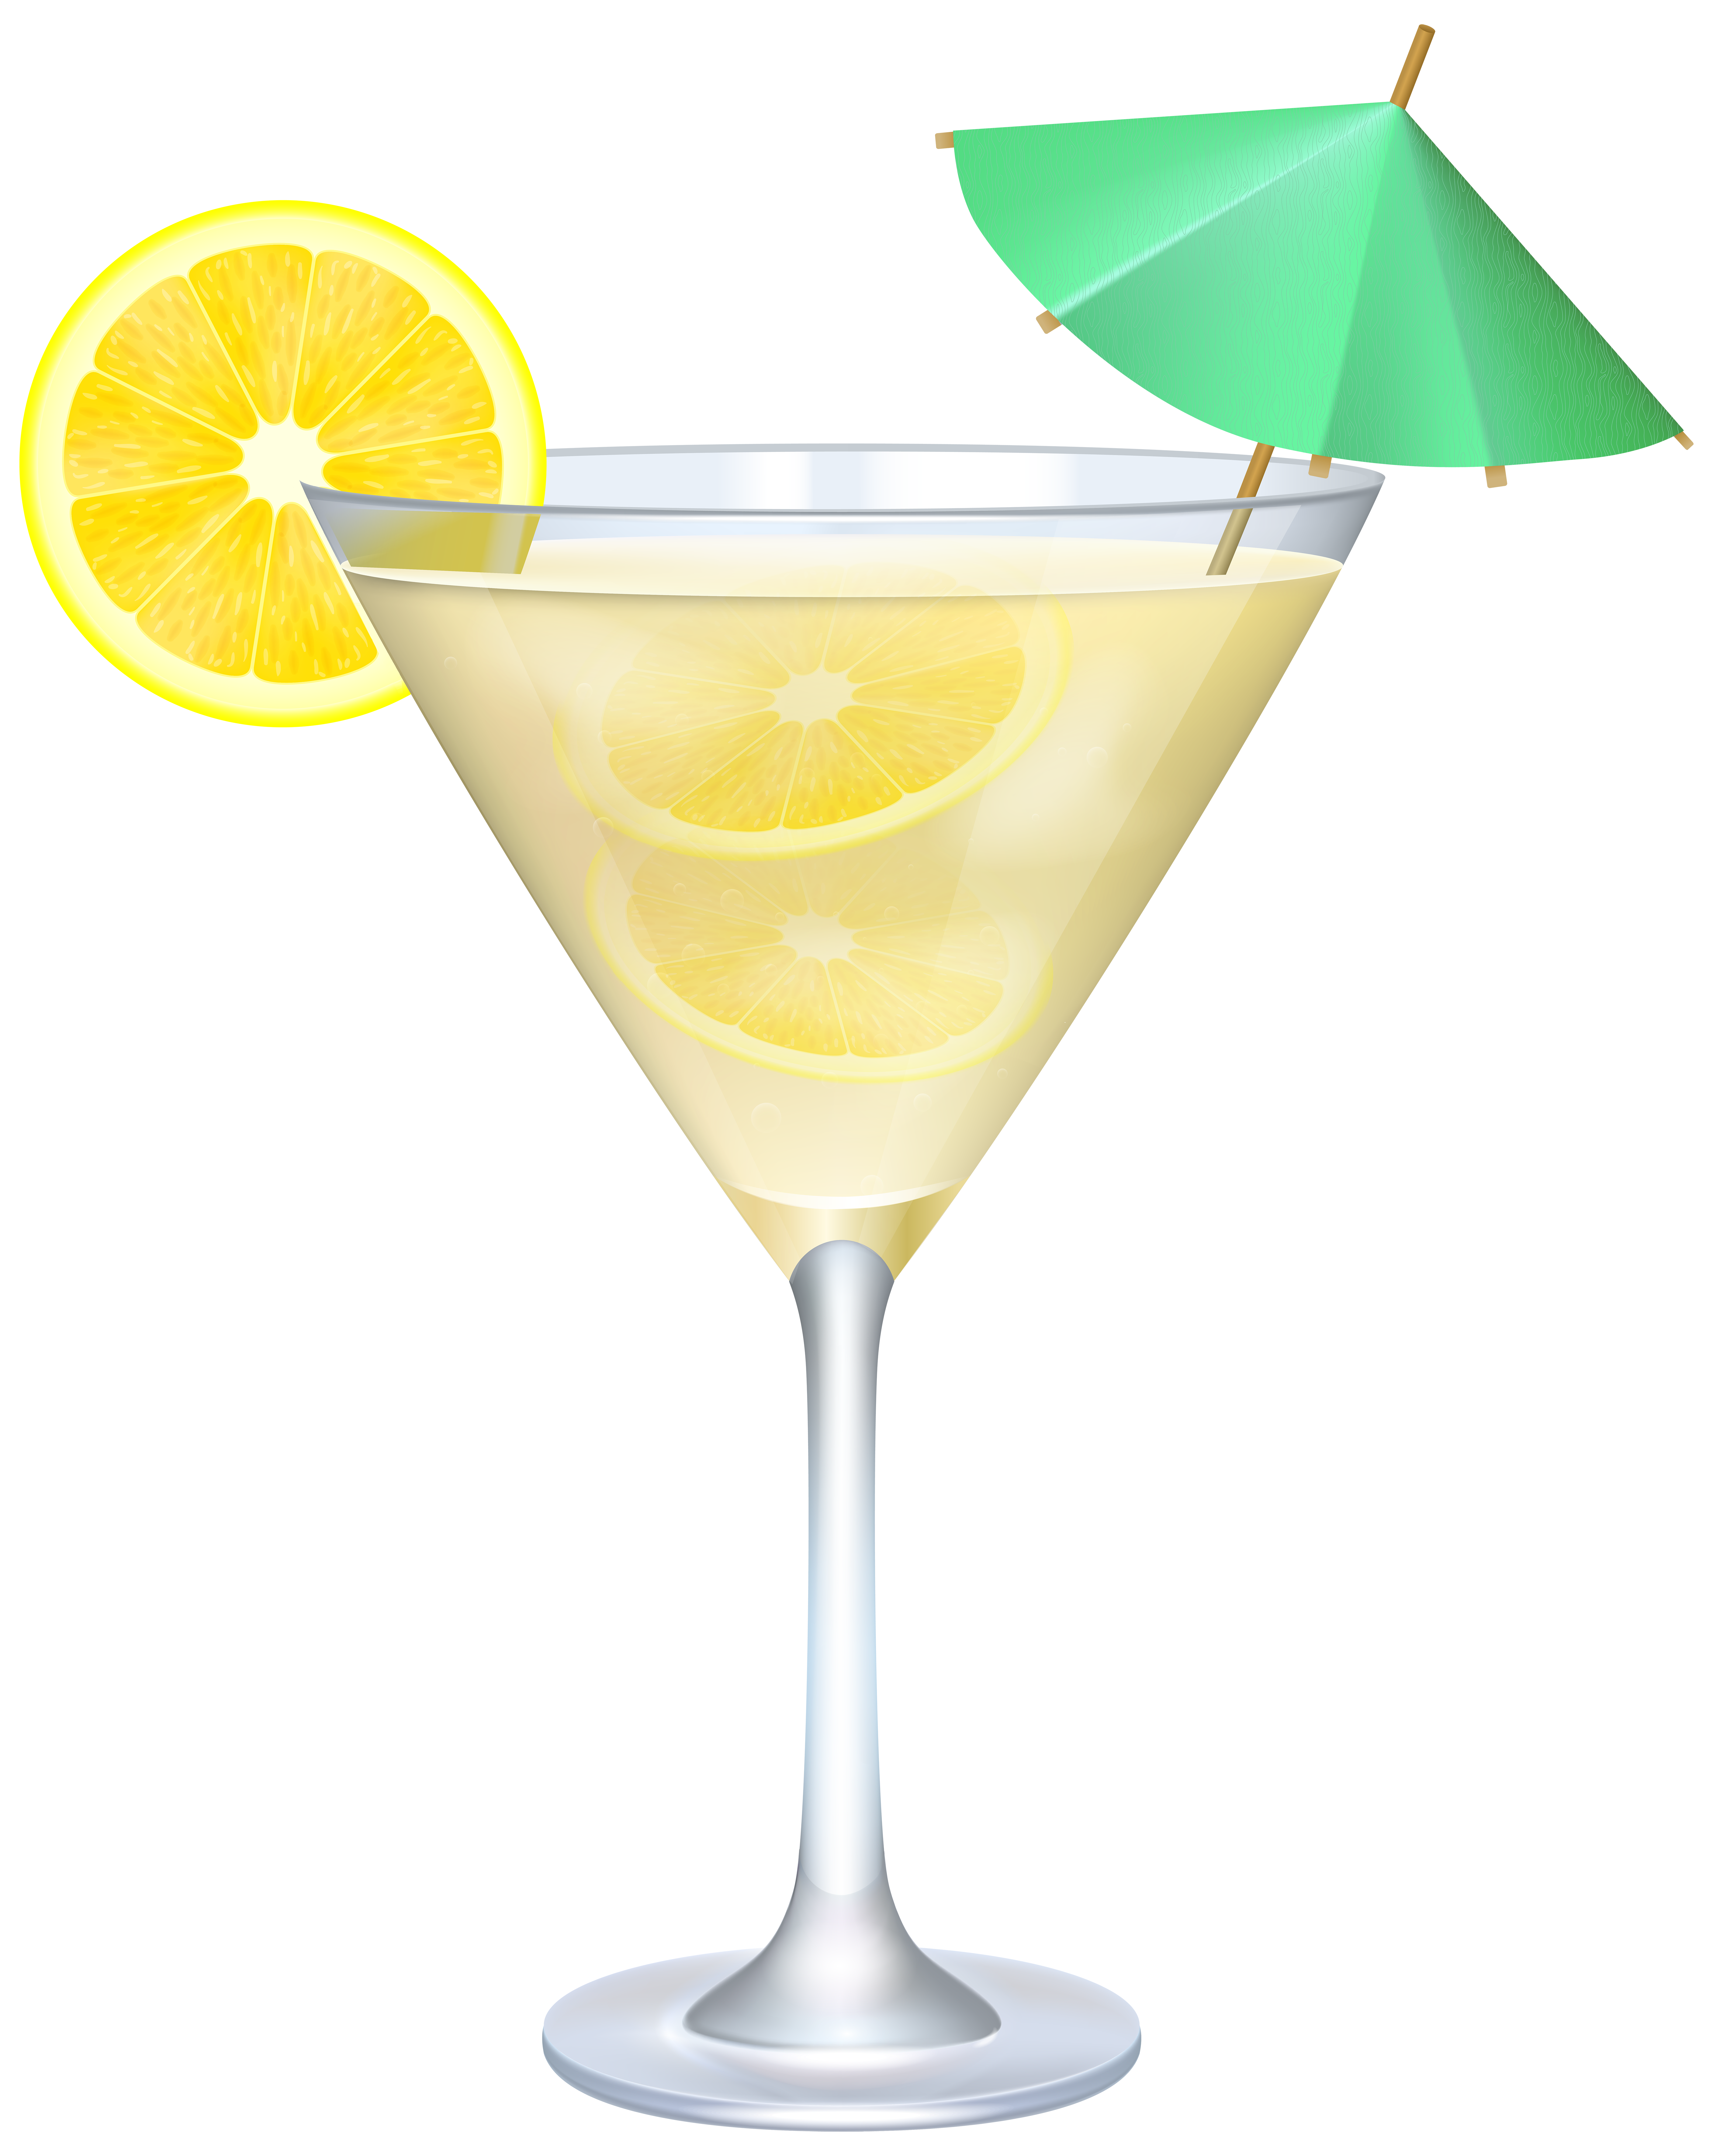 Cocktail With Lemon And Umbrella Png Clip Art Image Clip Art Cocktail Umbrellas Art Images